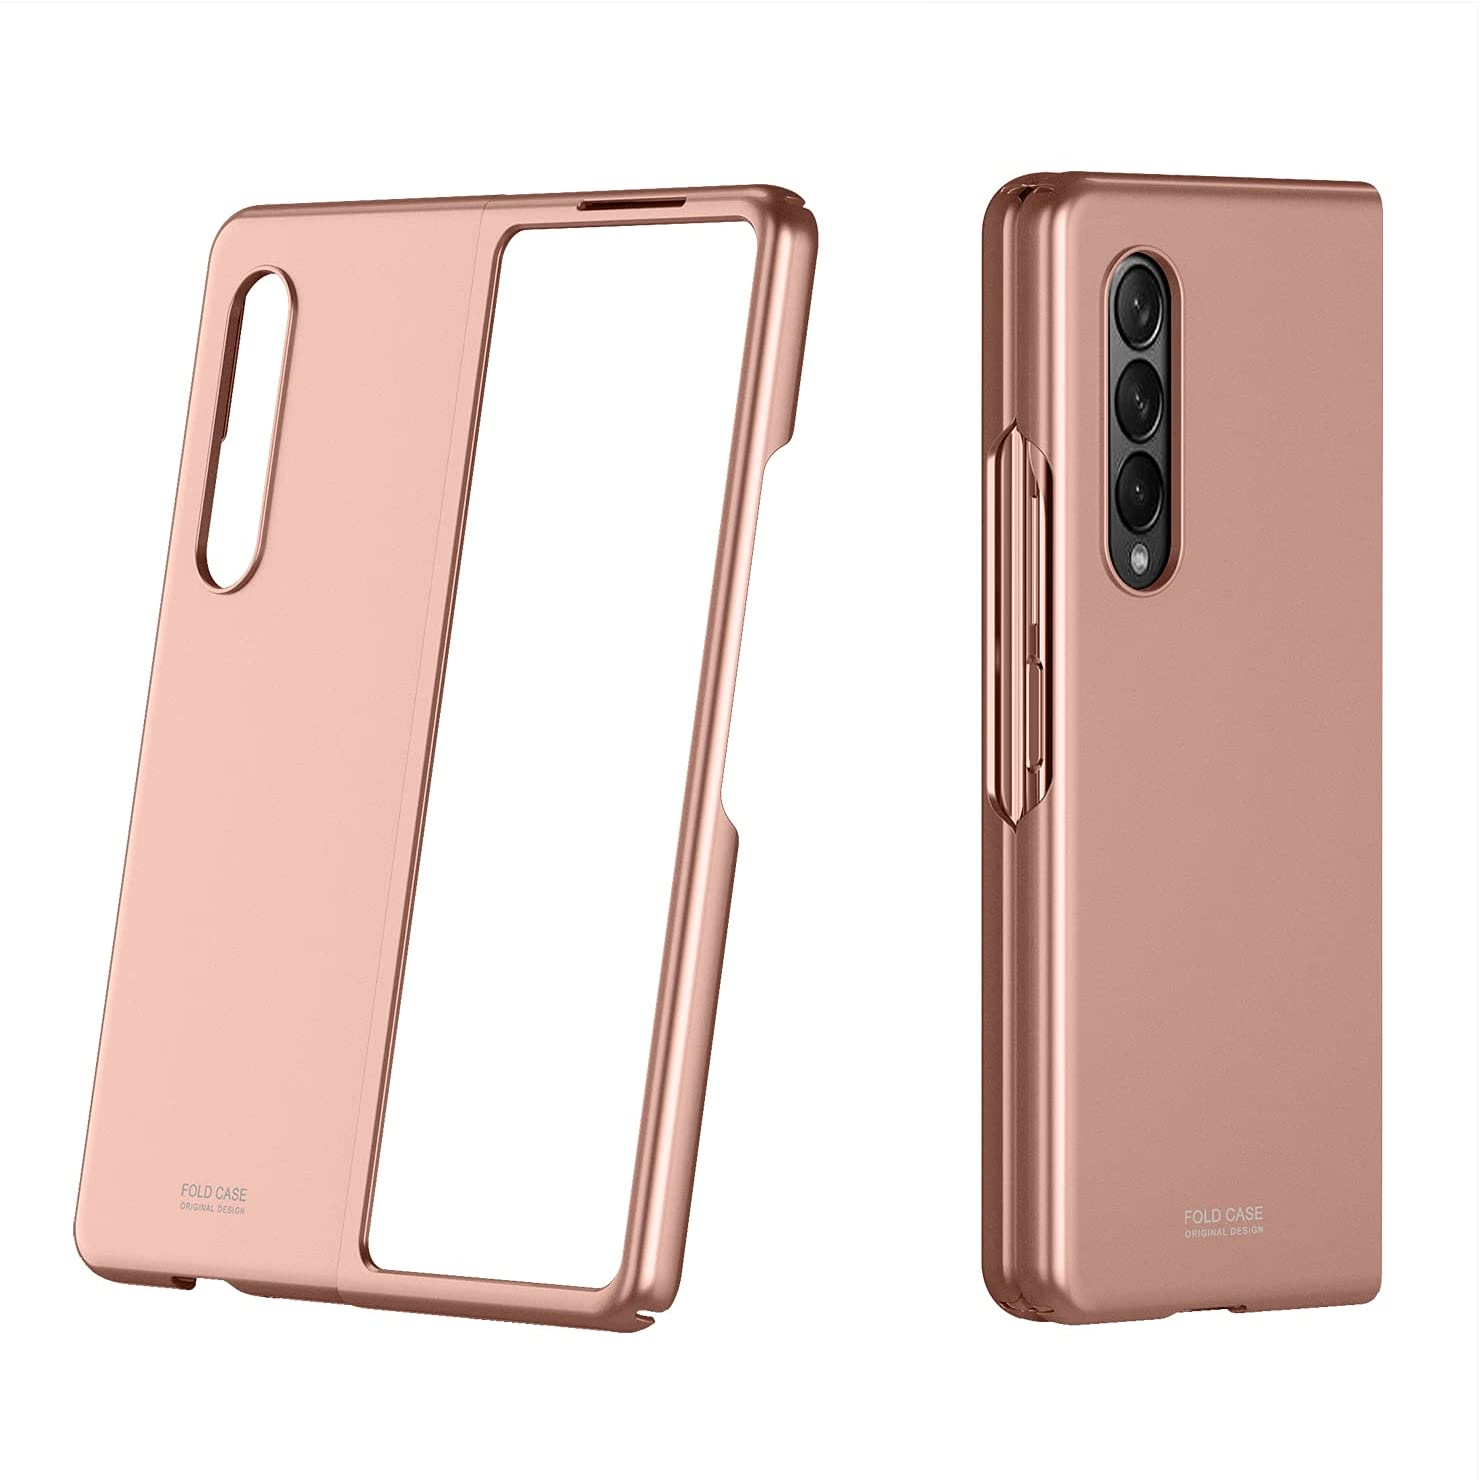 WATACHE for Galaxy Z Fold 3 Case,Thin Hard PC Full Anti-Scratch Shook-Proof Bumper Flip Skin Feel Protective Cover with Matte Finish for Samsung Galaxy Z Fold 3 5G,Rose Gold